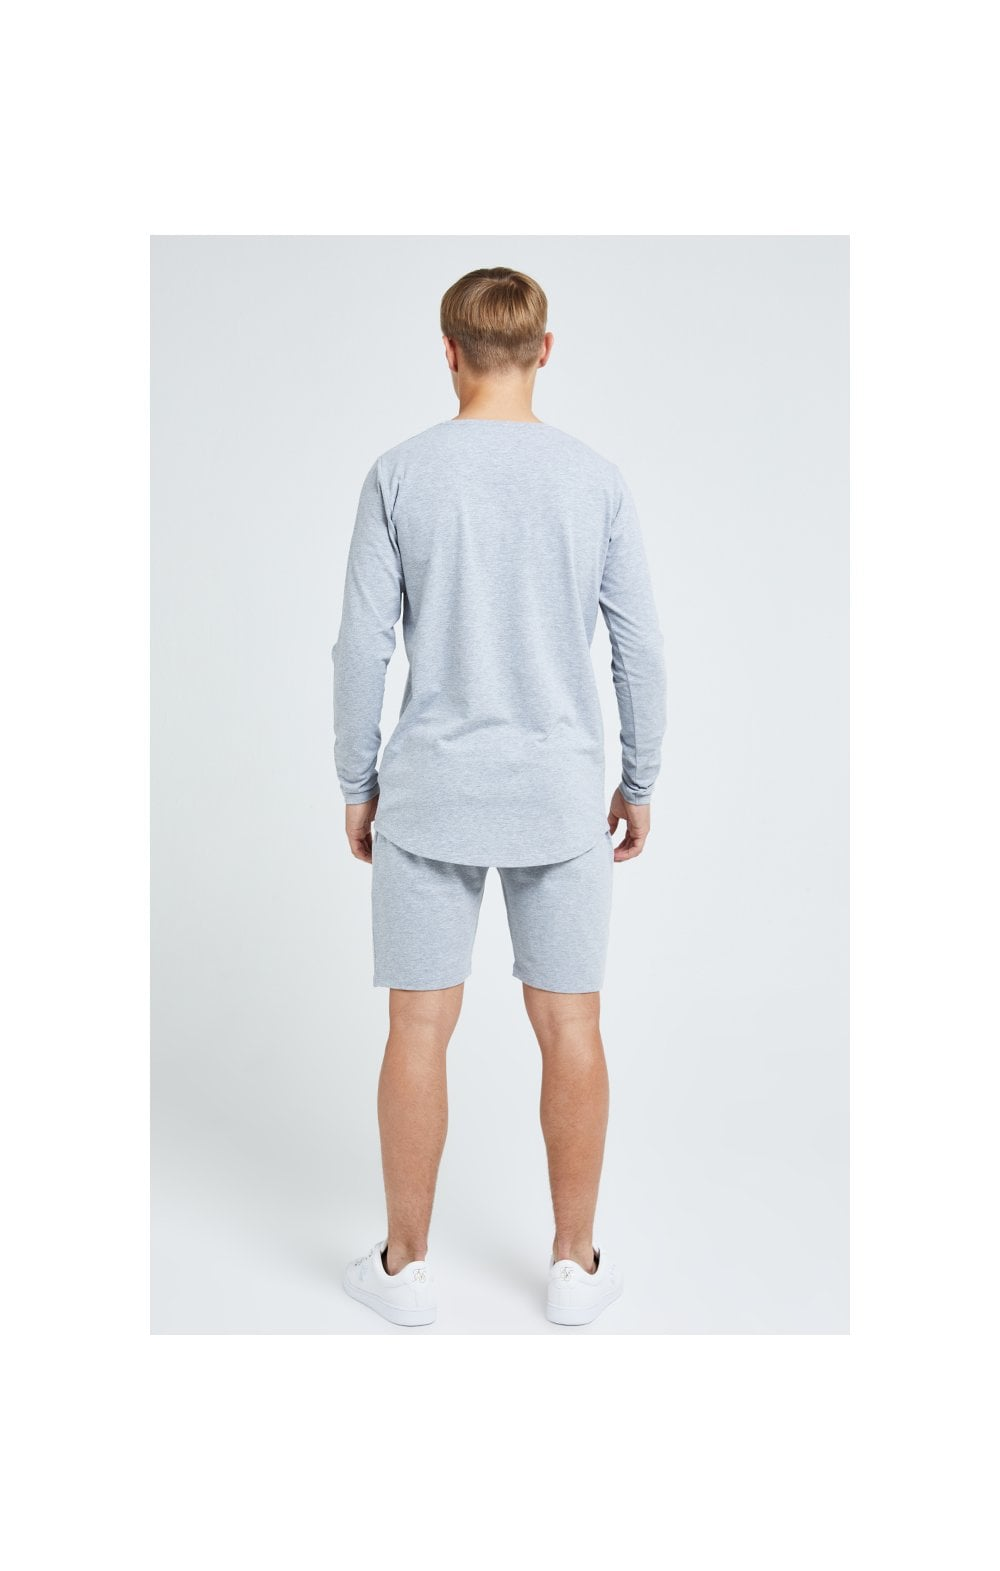 Illusive London Core Jersey Shorts - Grey Marl (6)